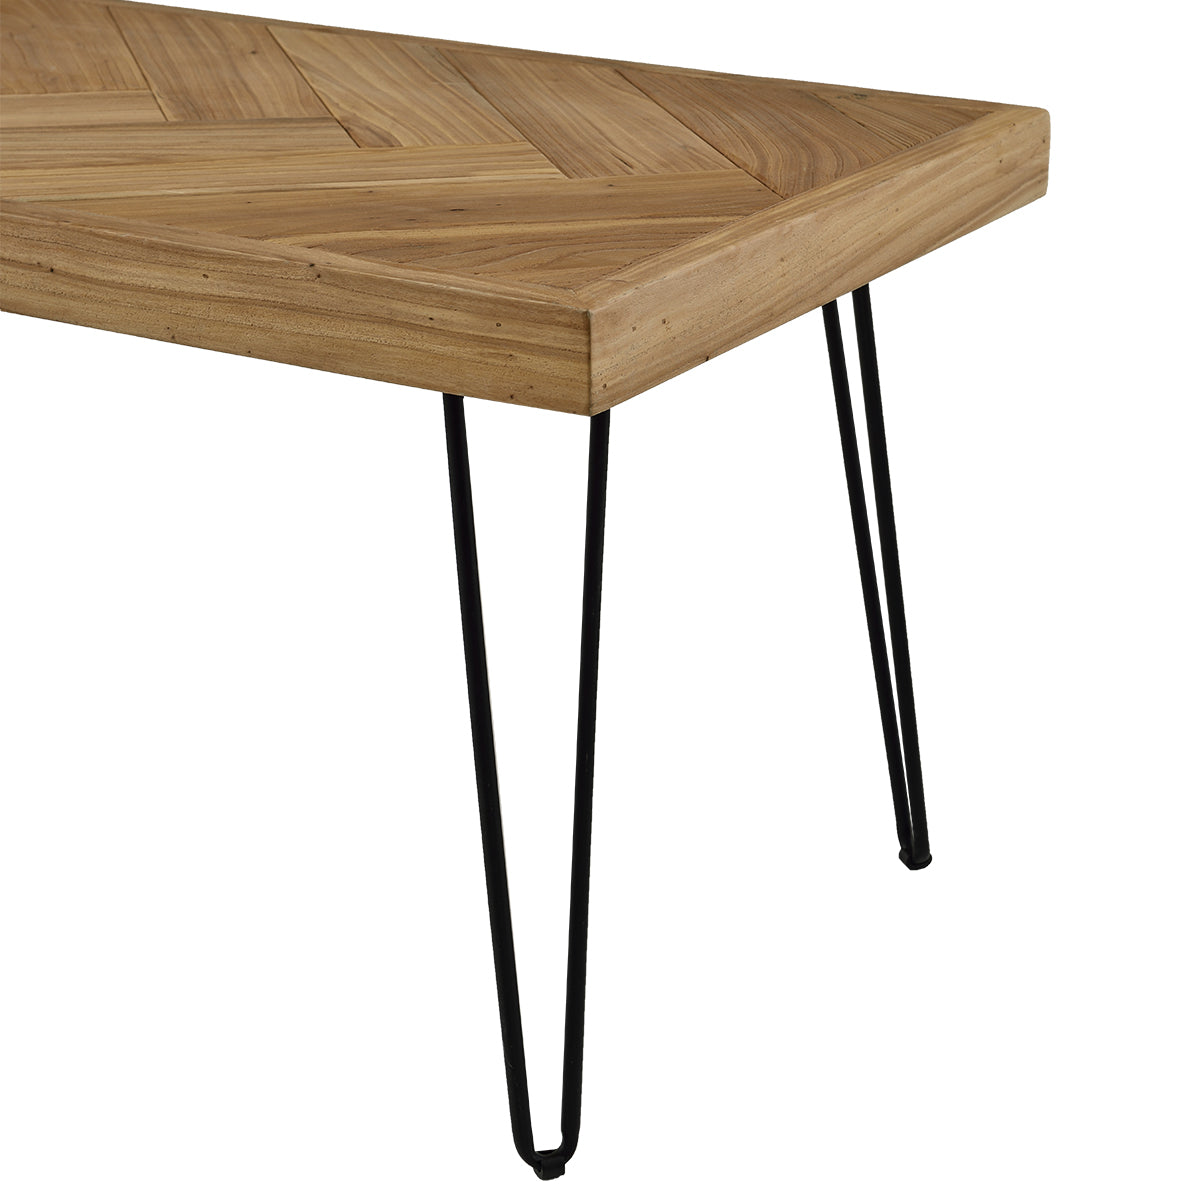 Black Coffee Table w/Chevron Pattern & Metal Hairpin Legs Glossy Finished Wood BH190111